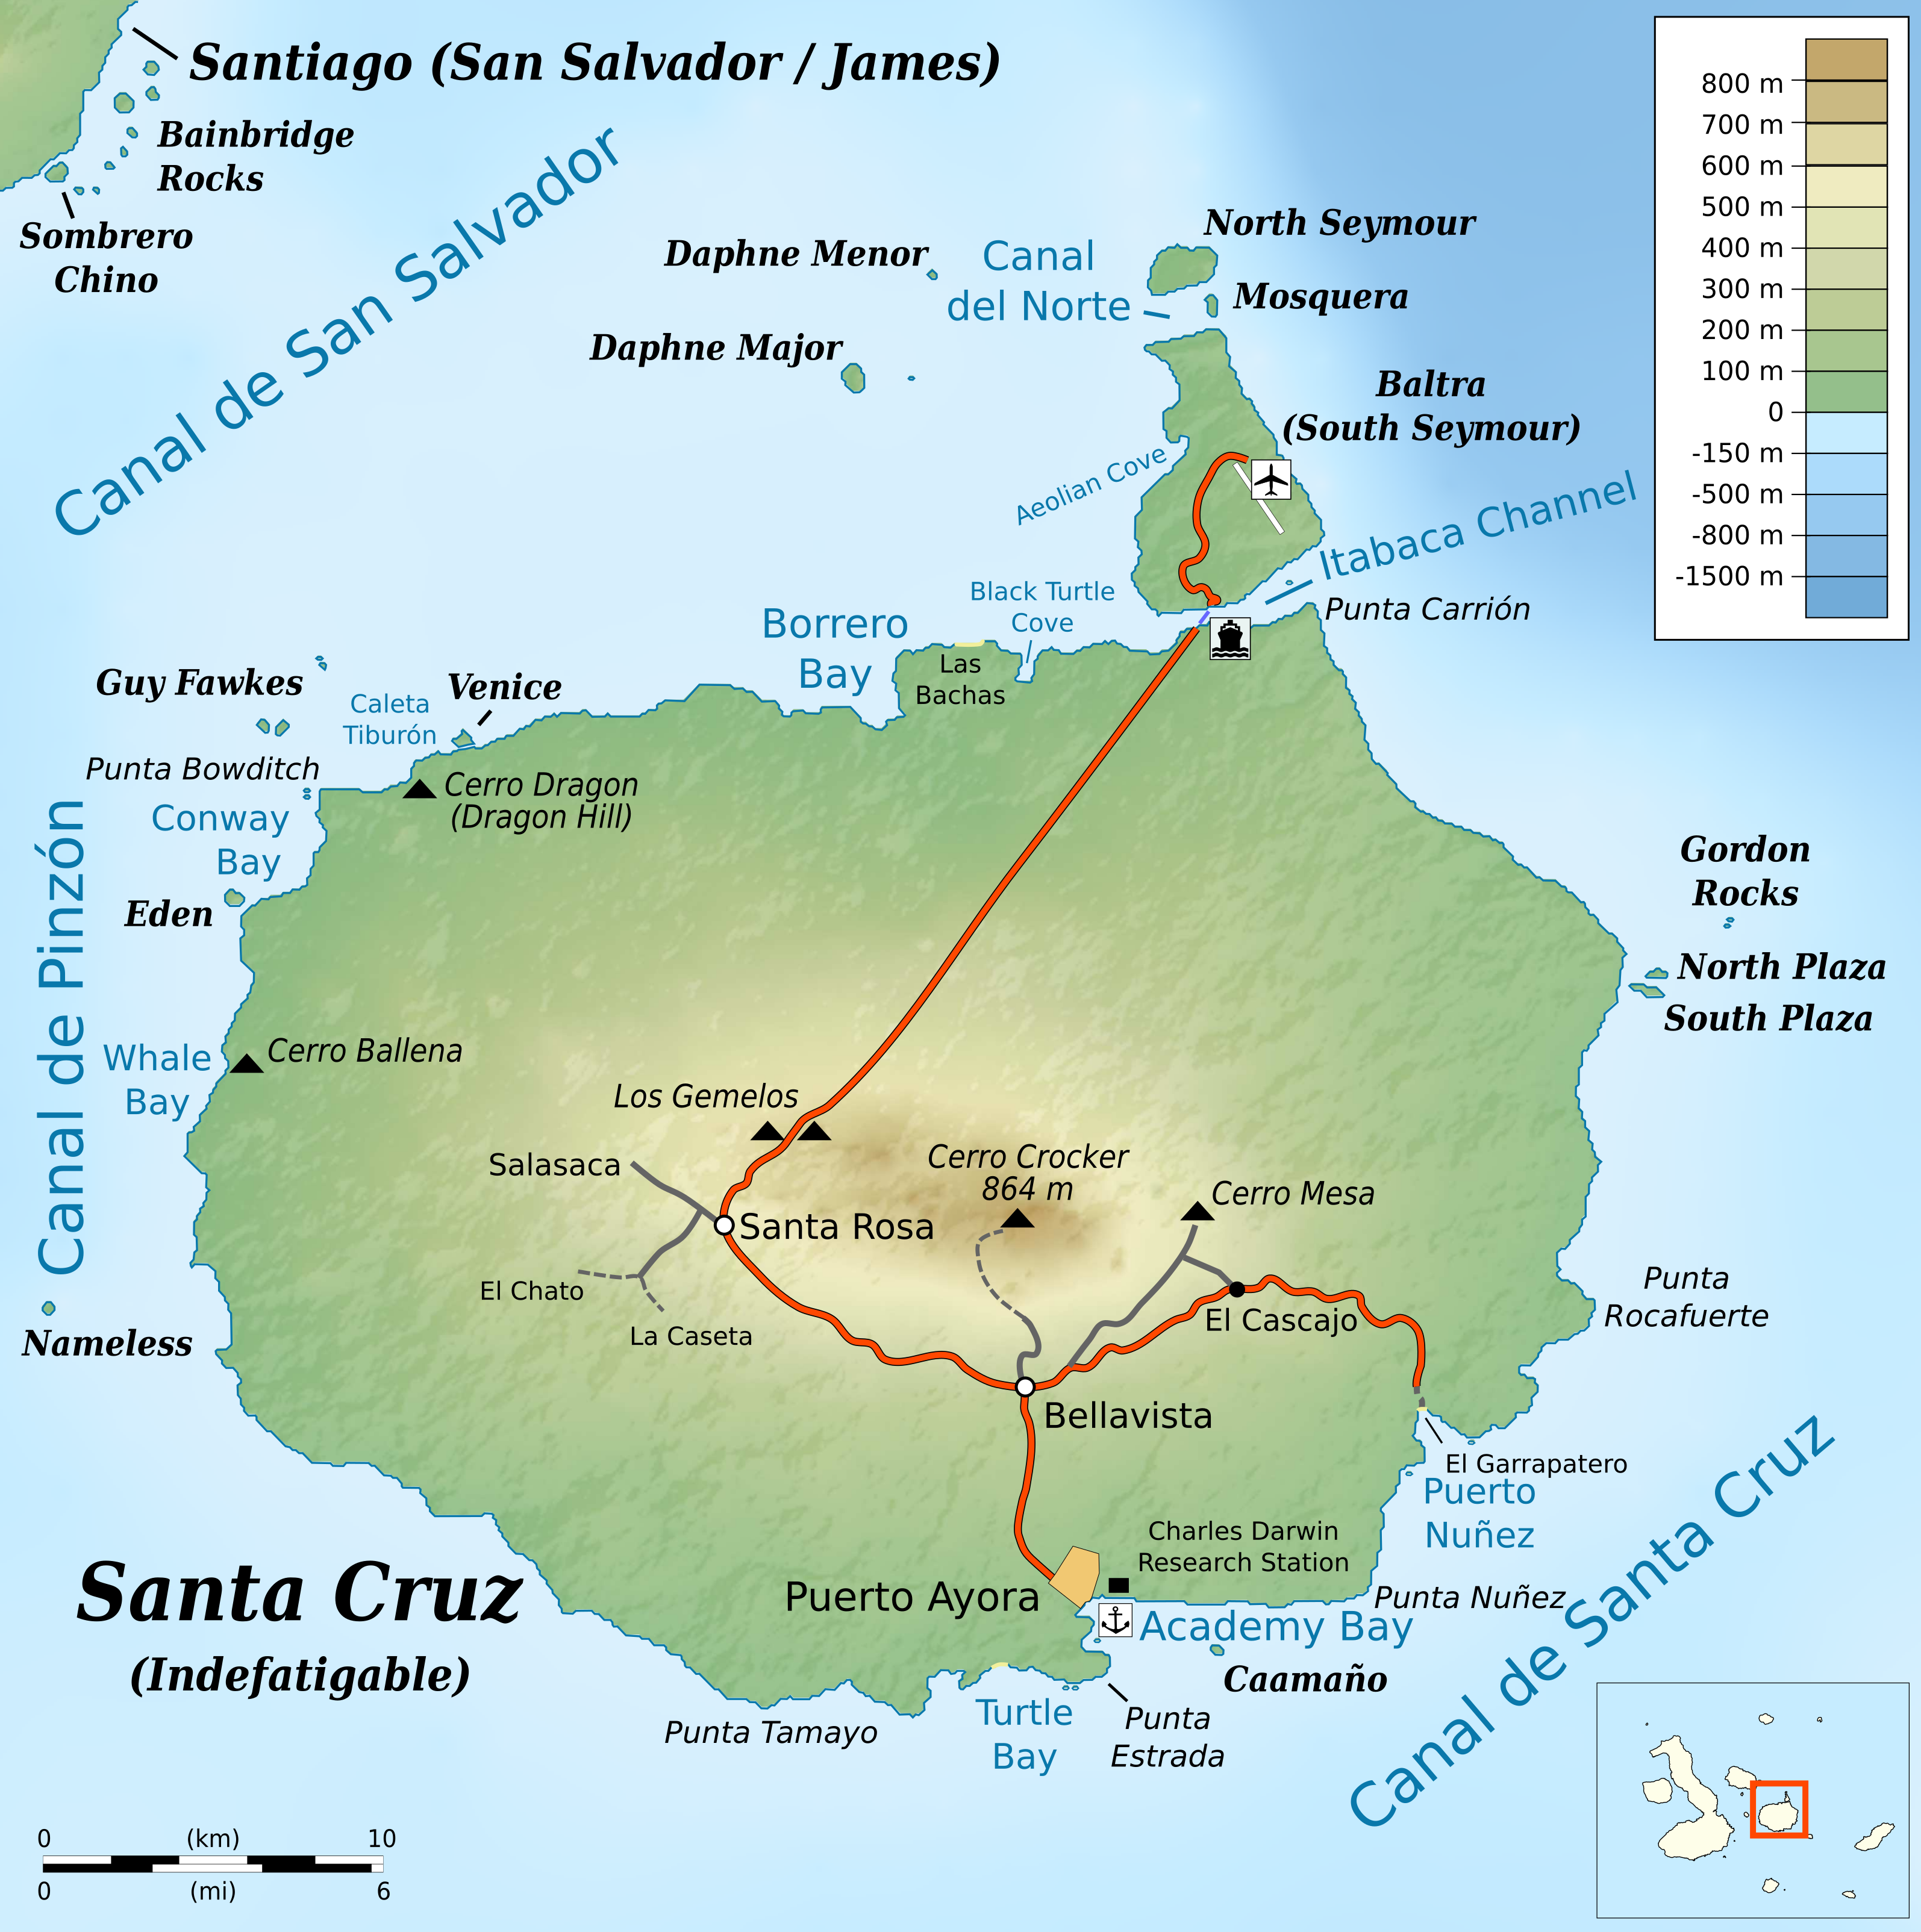 File:Santa Cruz topographic map-en.png - Wikipedia on big sur map, san fransico state university on map, san jose map, california map, central ca map, machico map, northern ca map, watsonville ca on map, san juan map, half moon bay map, rio blanco map, bumthang map, port costa map, merizo map, barataria map, san francisco map, puente alto map, san leandro on a map, san luis obispo map, downieville map,